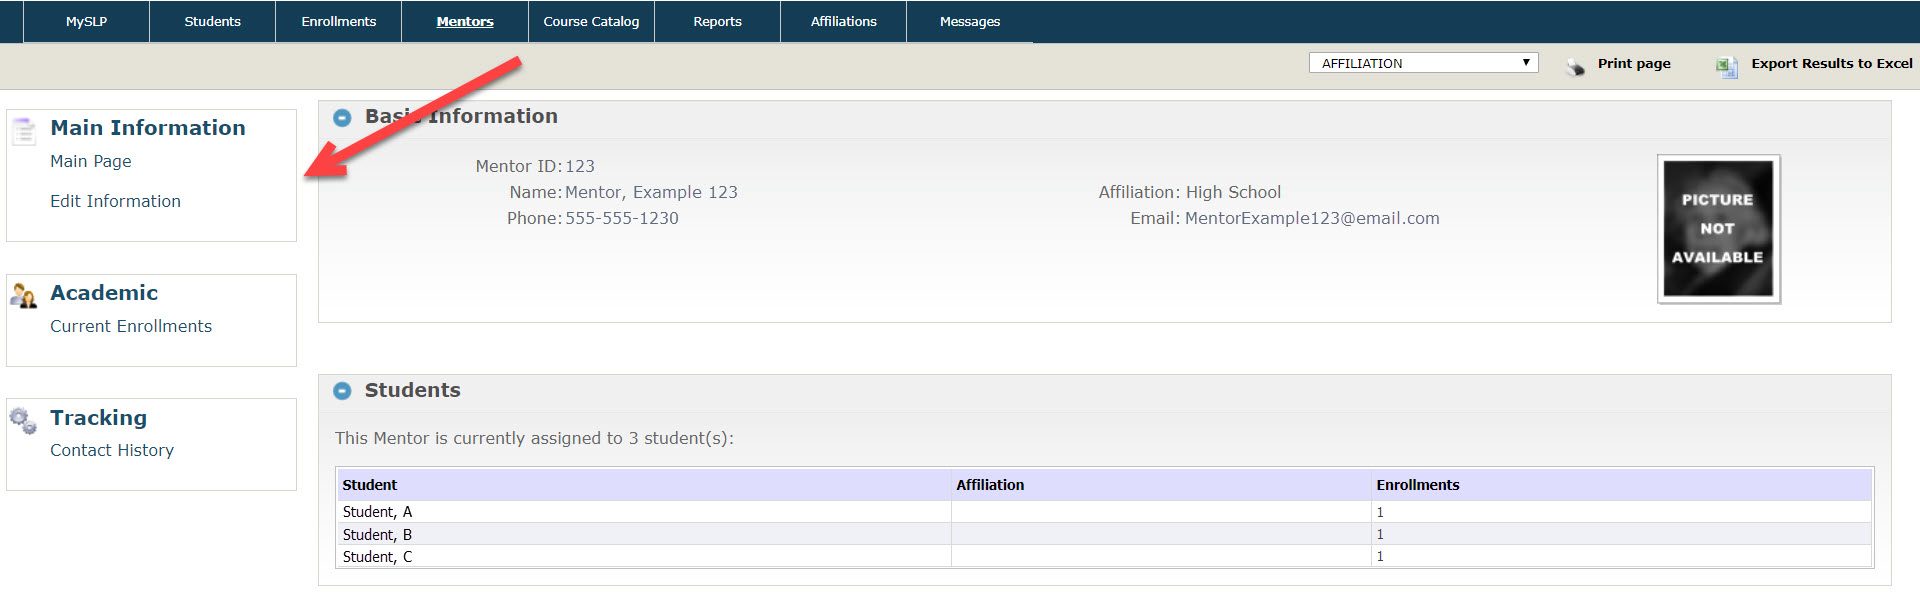 The Mentor profile page is displayed showing mentor contact information and students he or she is currently monitoring. An arrow points to the left navigation menu with options shown as described above.